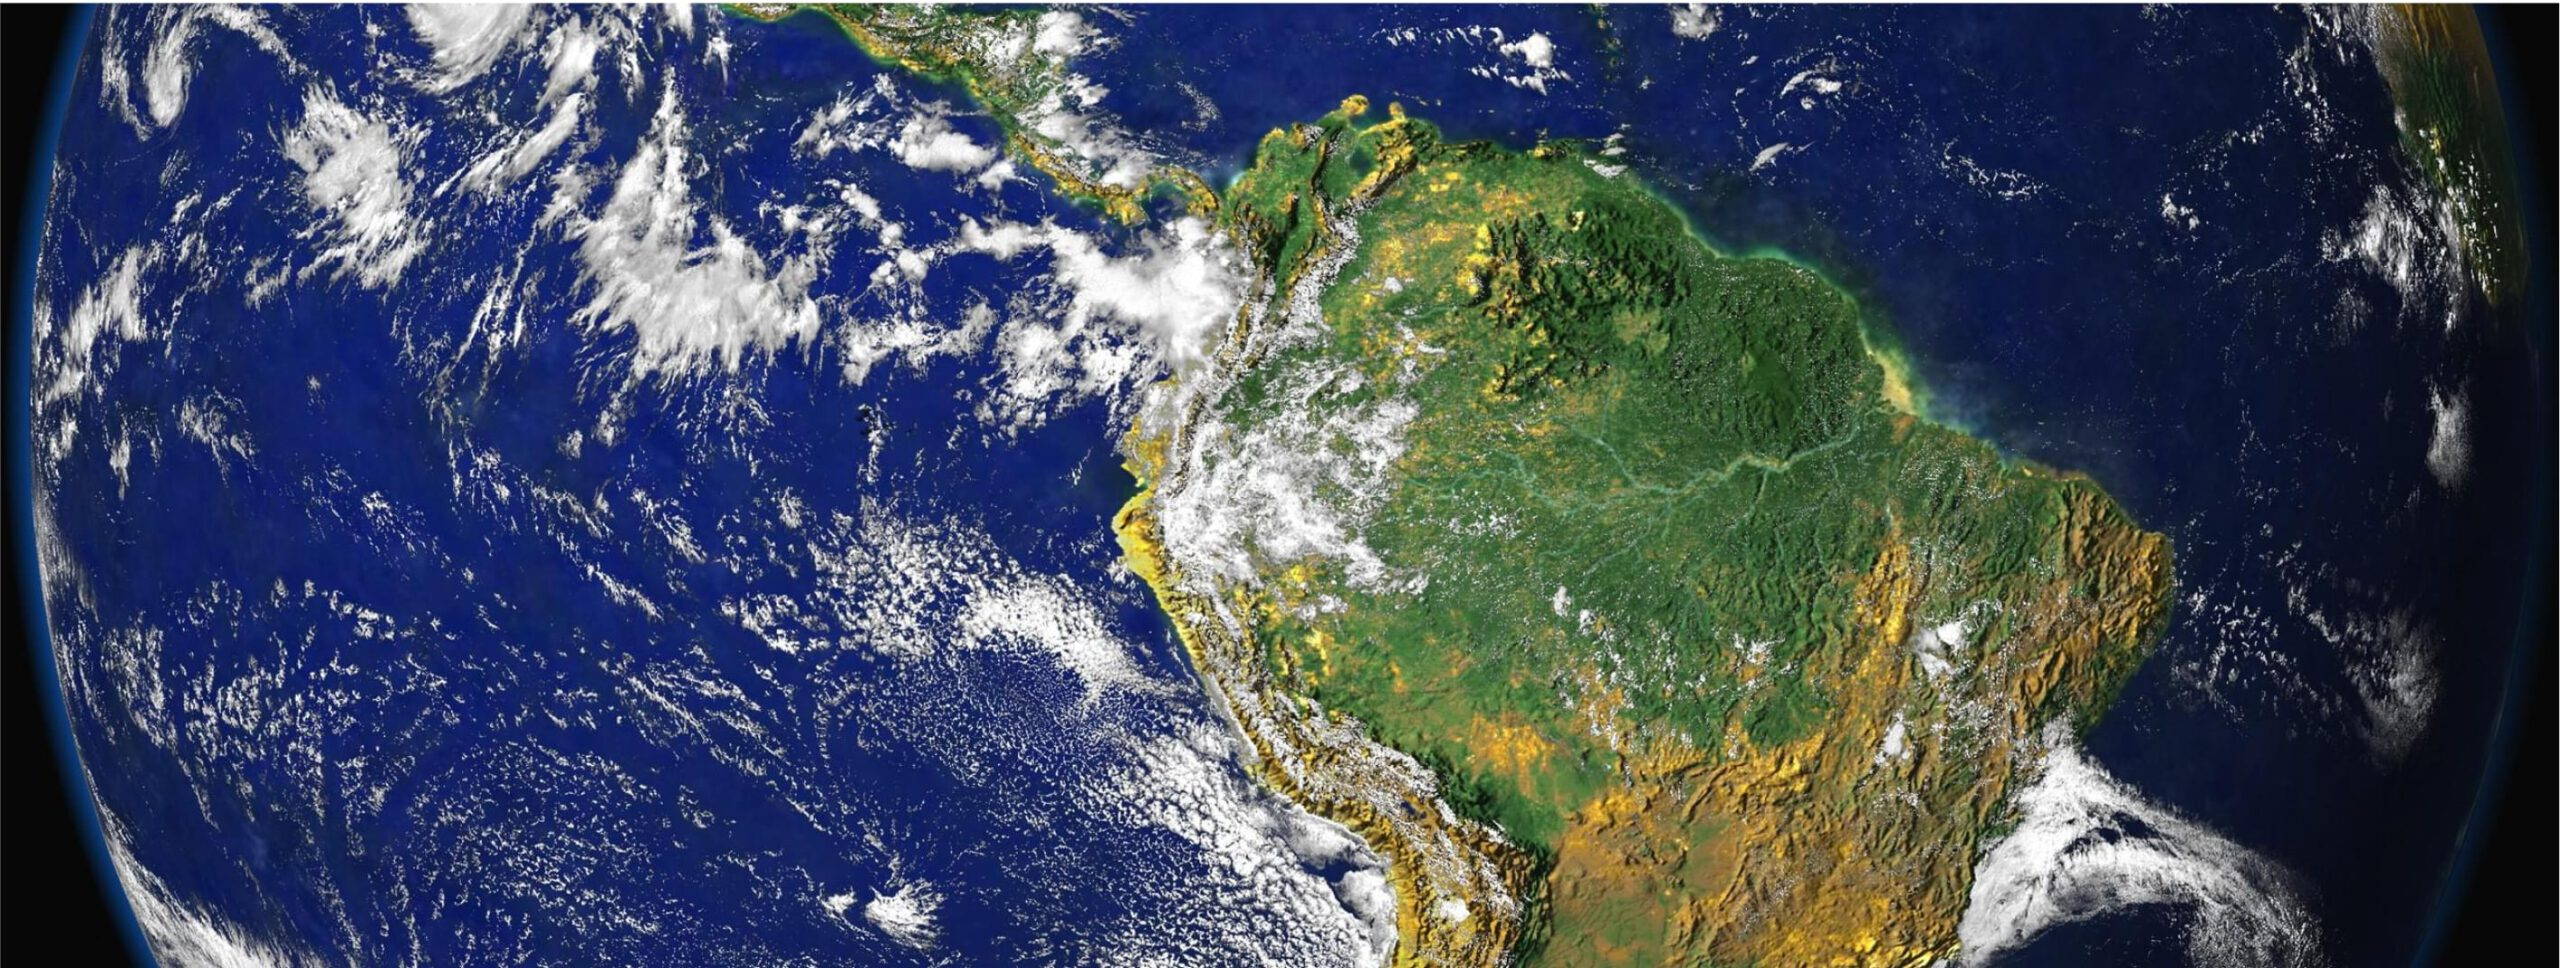 Amazon River Basin photo